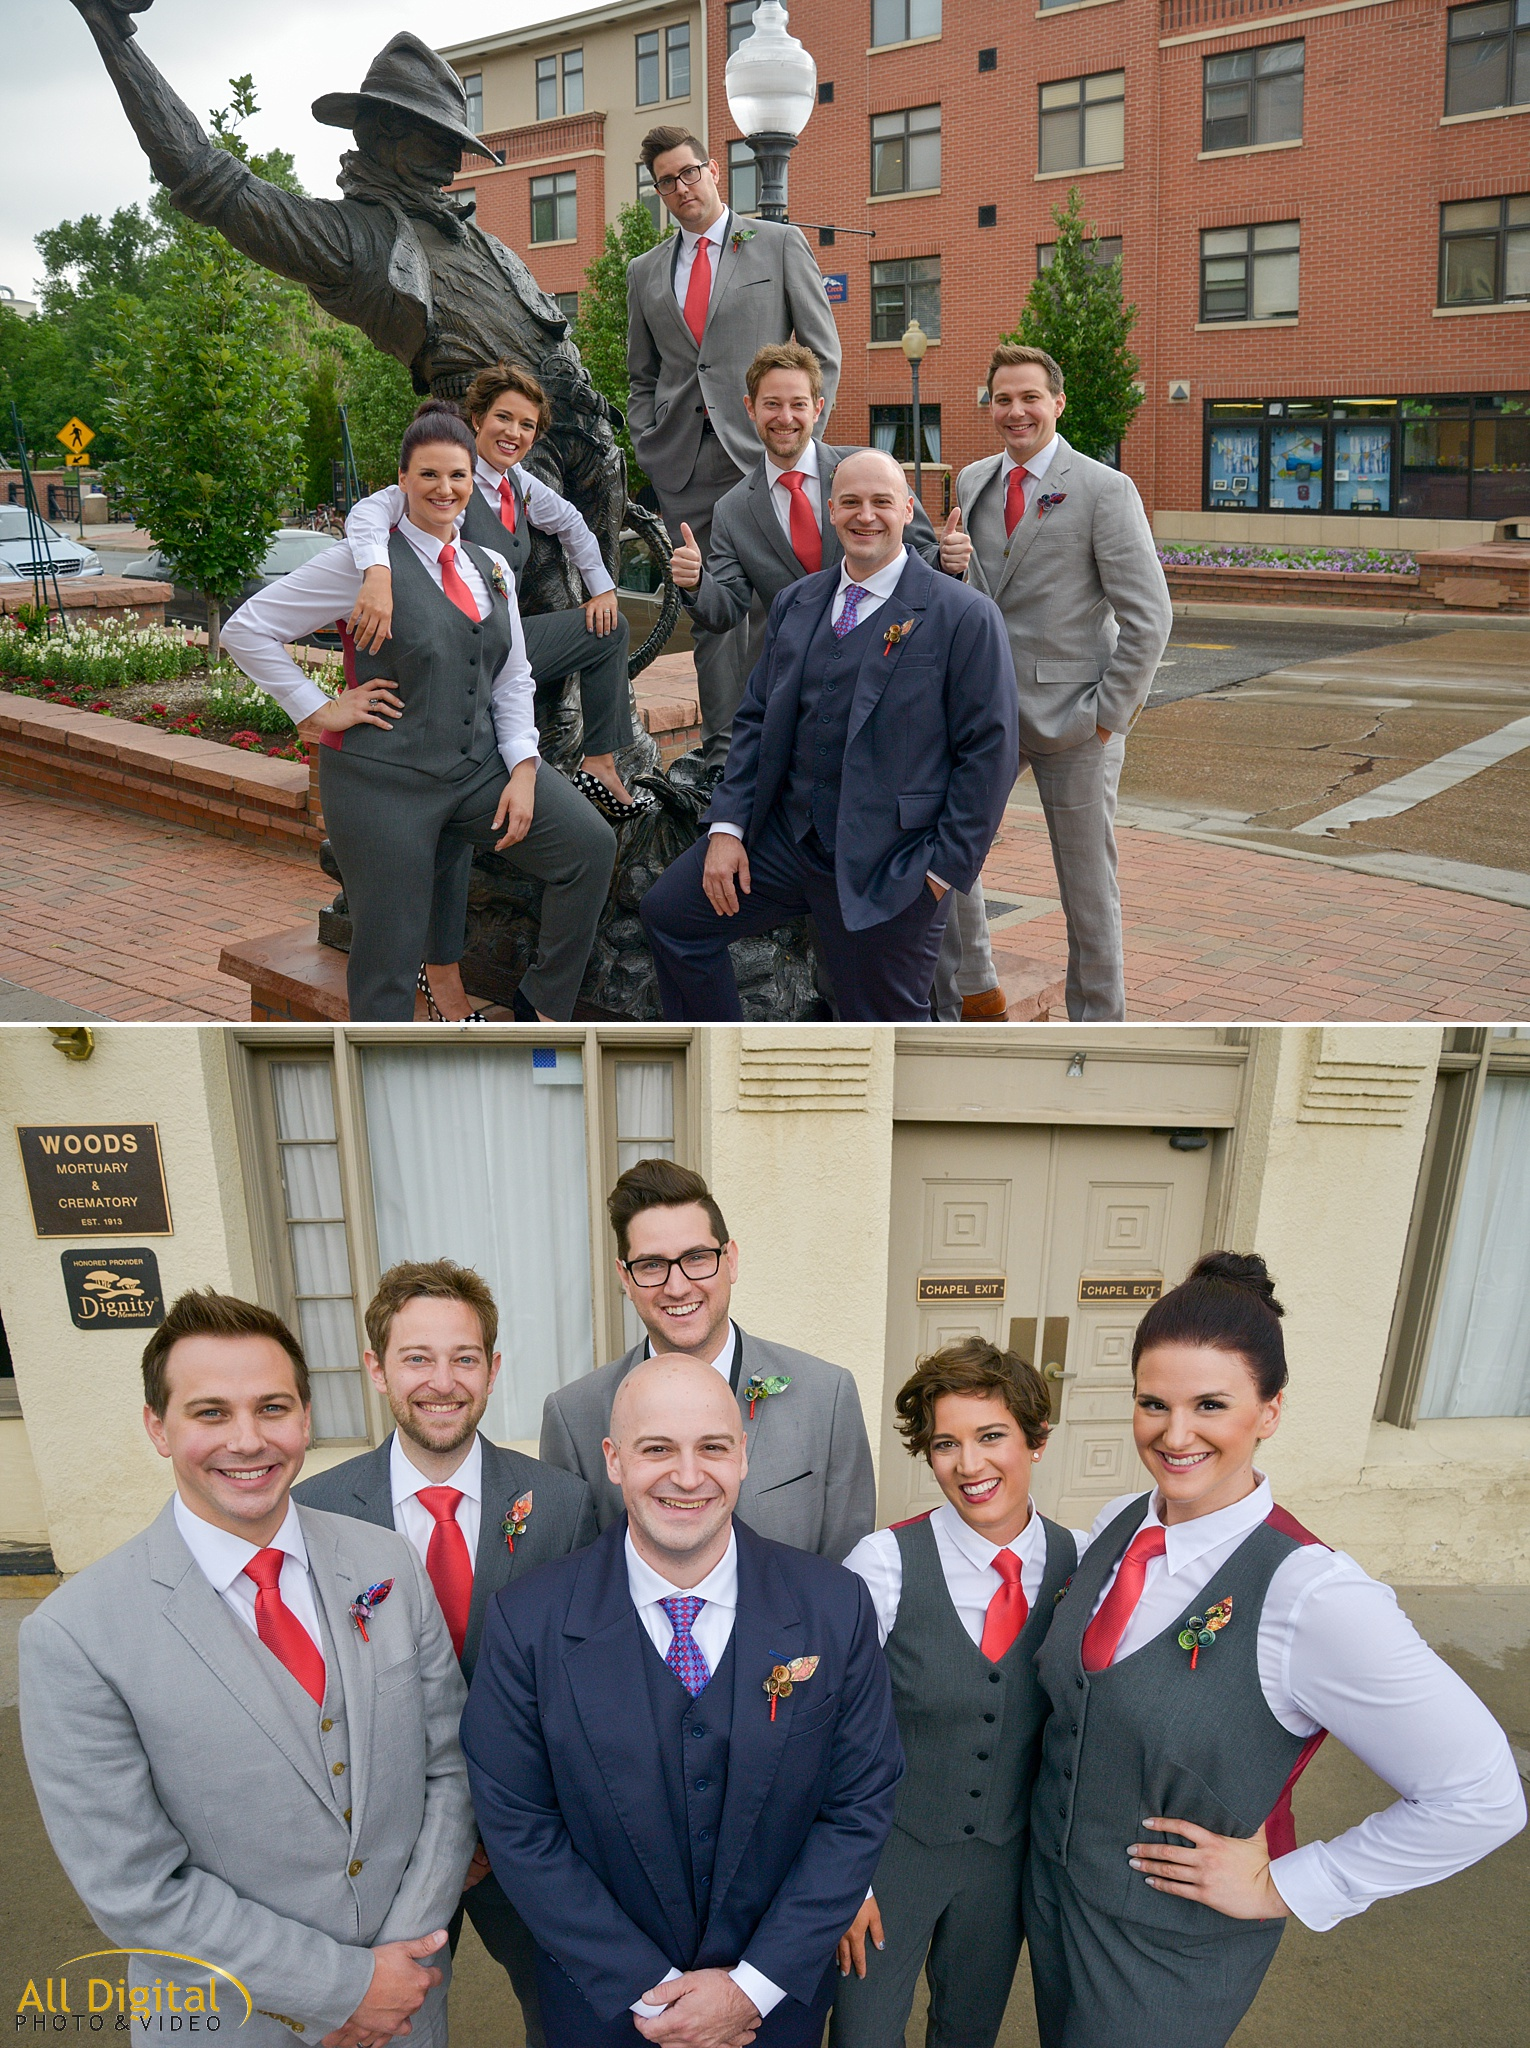 Jeremy & his groomsmen/groomswomen at the Golden Hotel photographed by All Digital Studios.